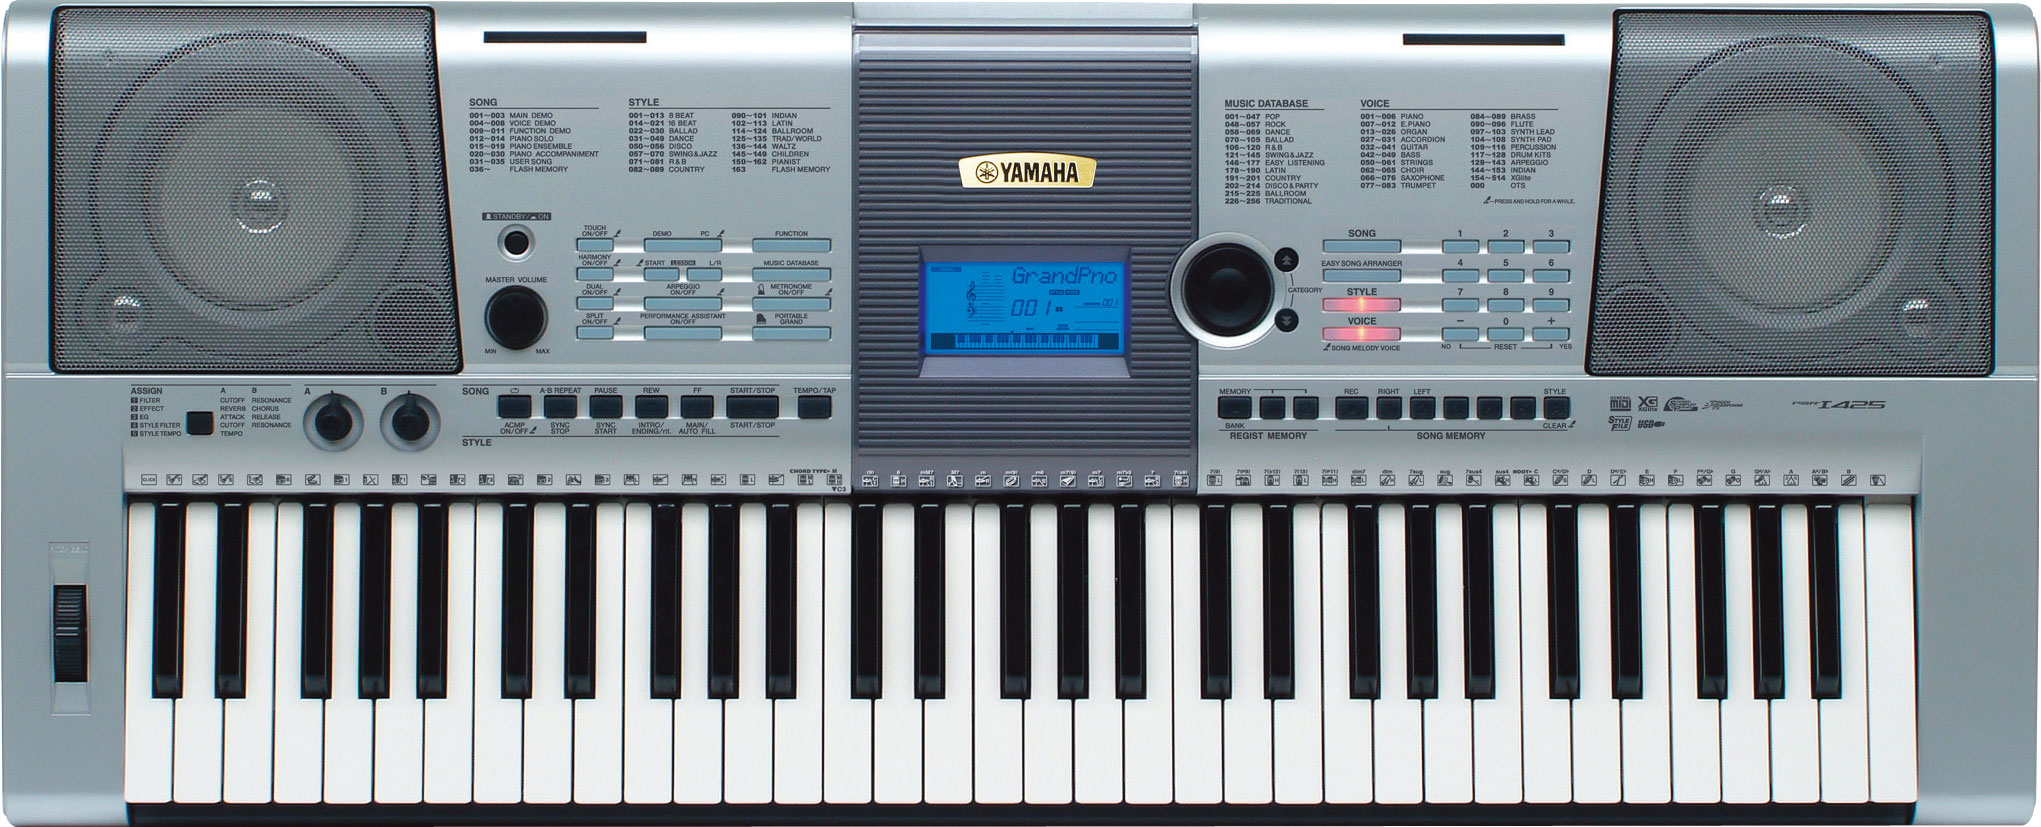 Yamaha digital keyboard psr i425 available at shopclues for Yamaha keyboard i425